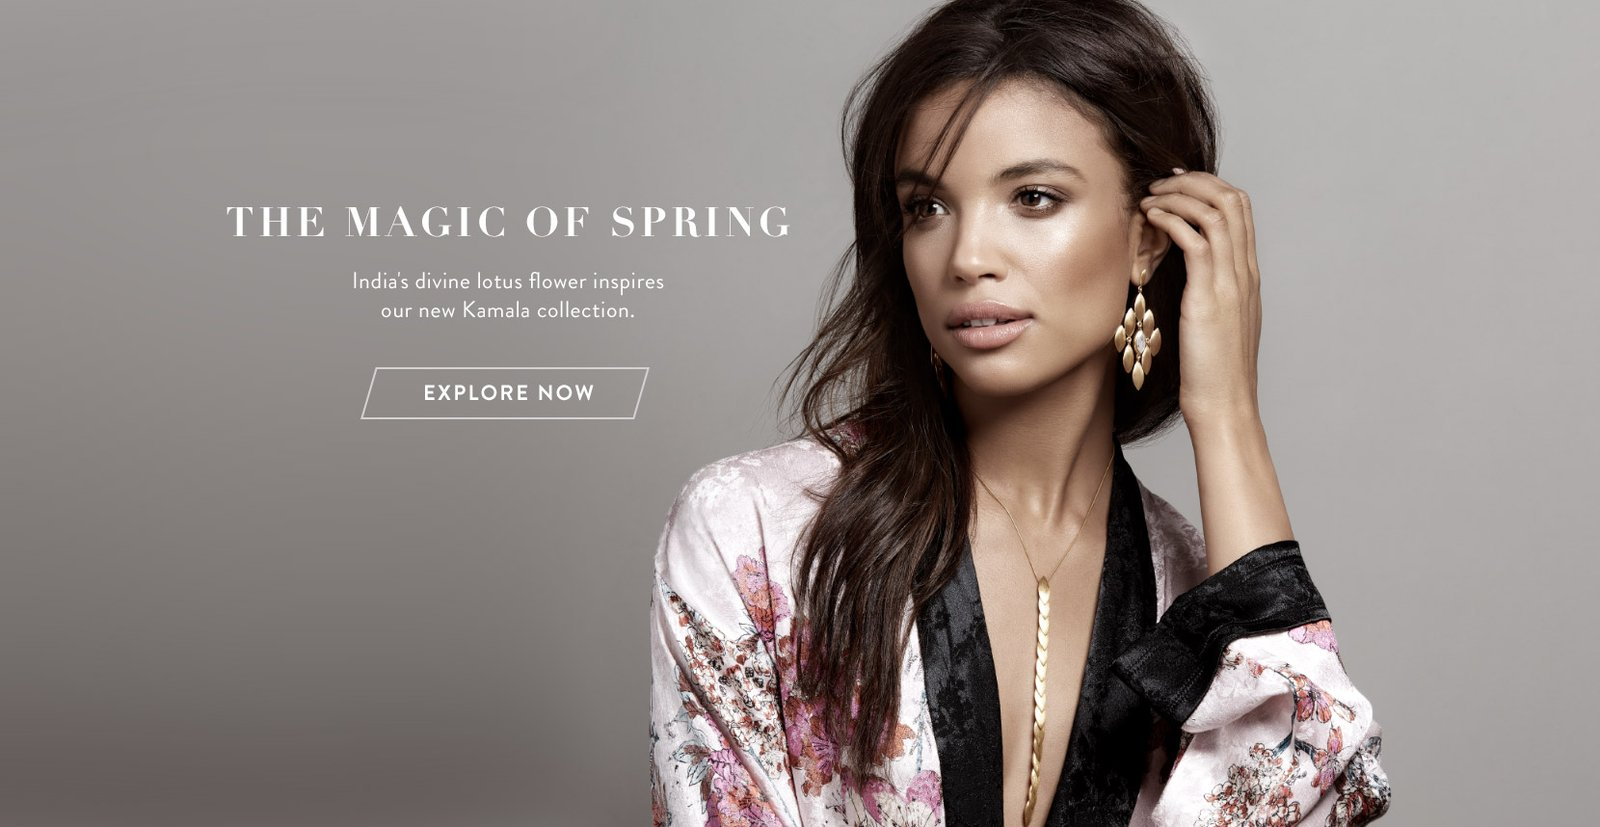 THE MAGIC OF SPRING - EXPLORE NOW ->